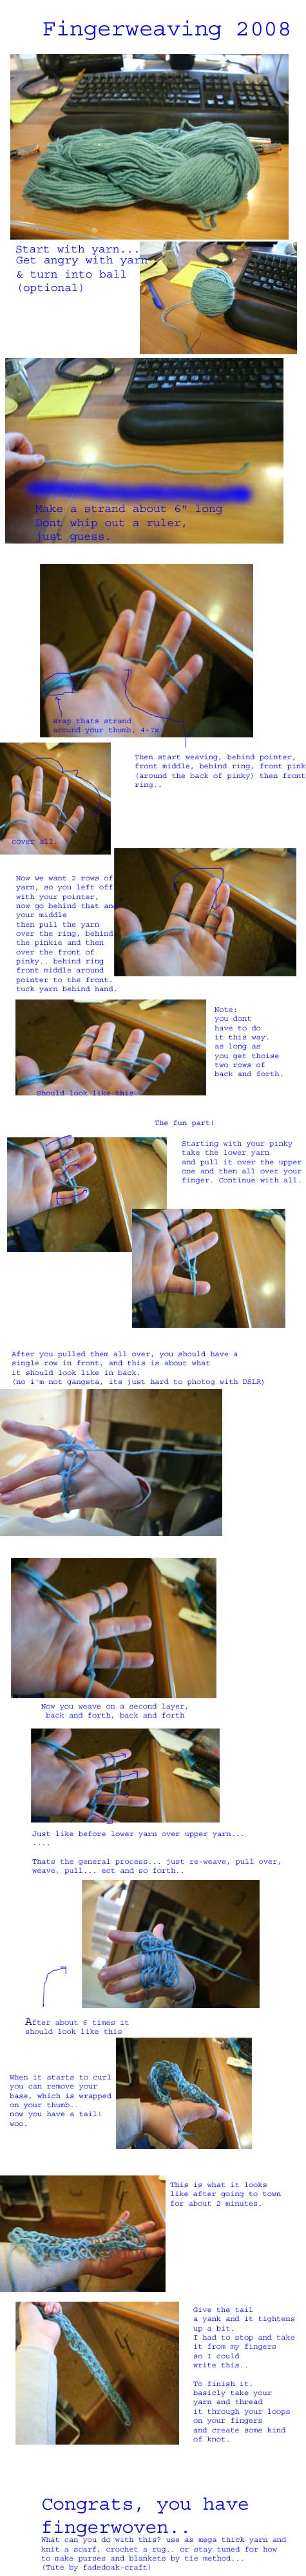 Fingerweaving Tutorial by fadedoak-craft